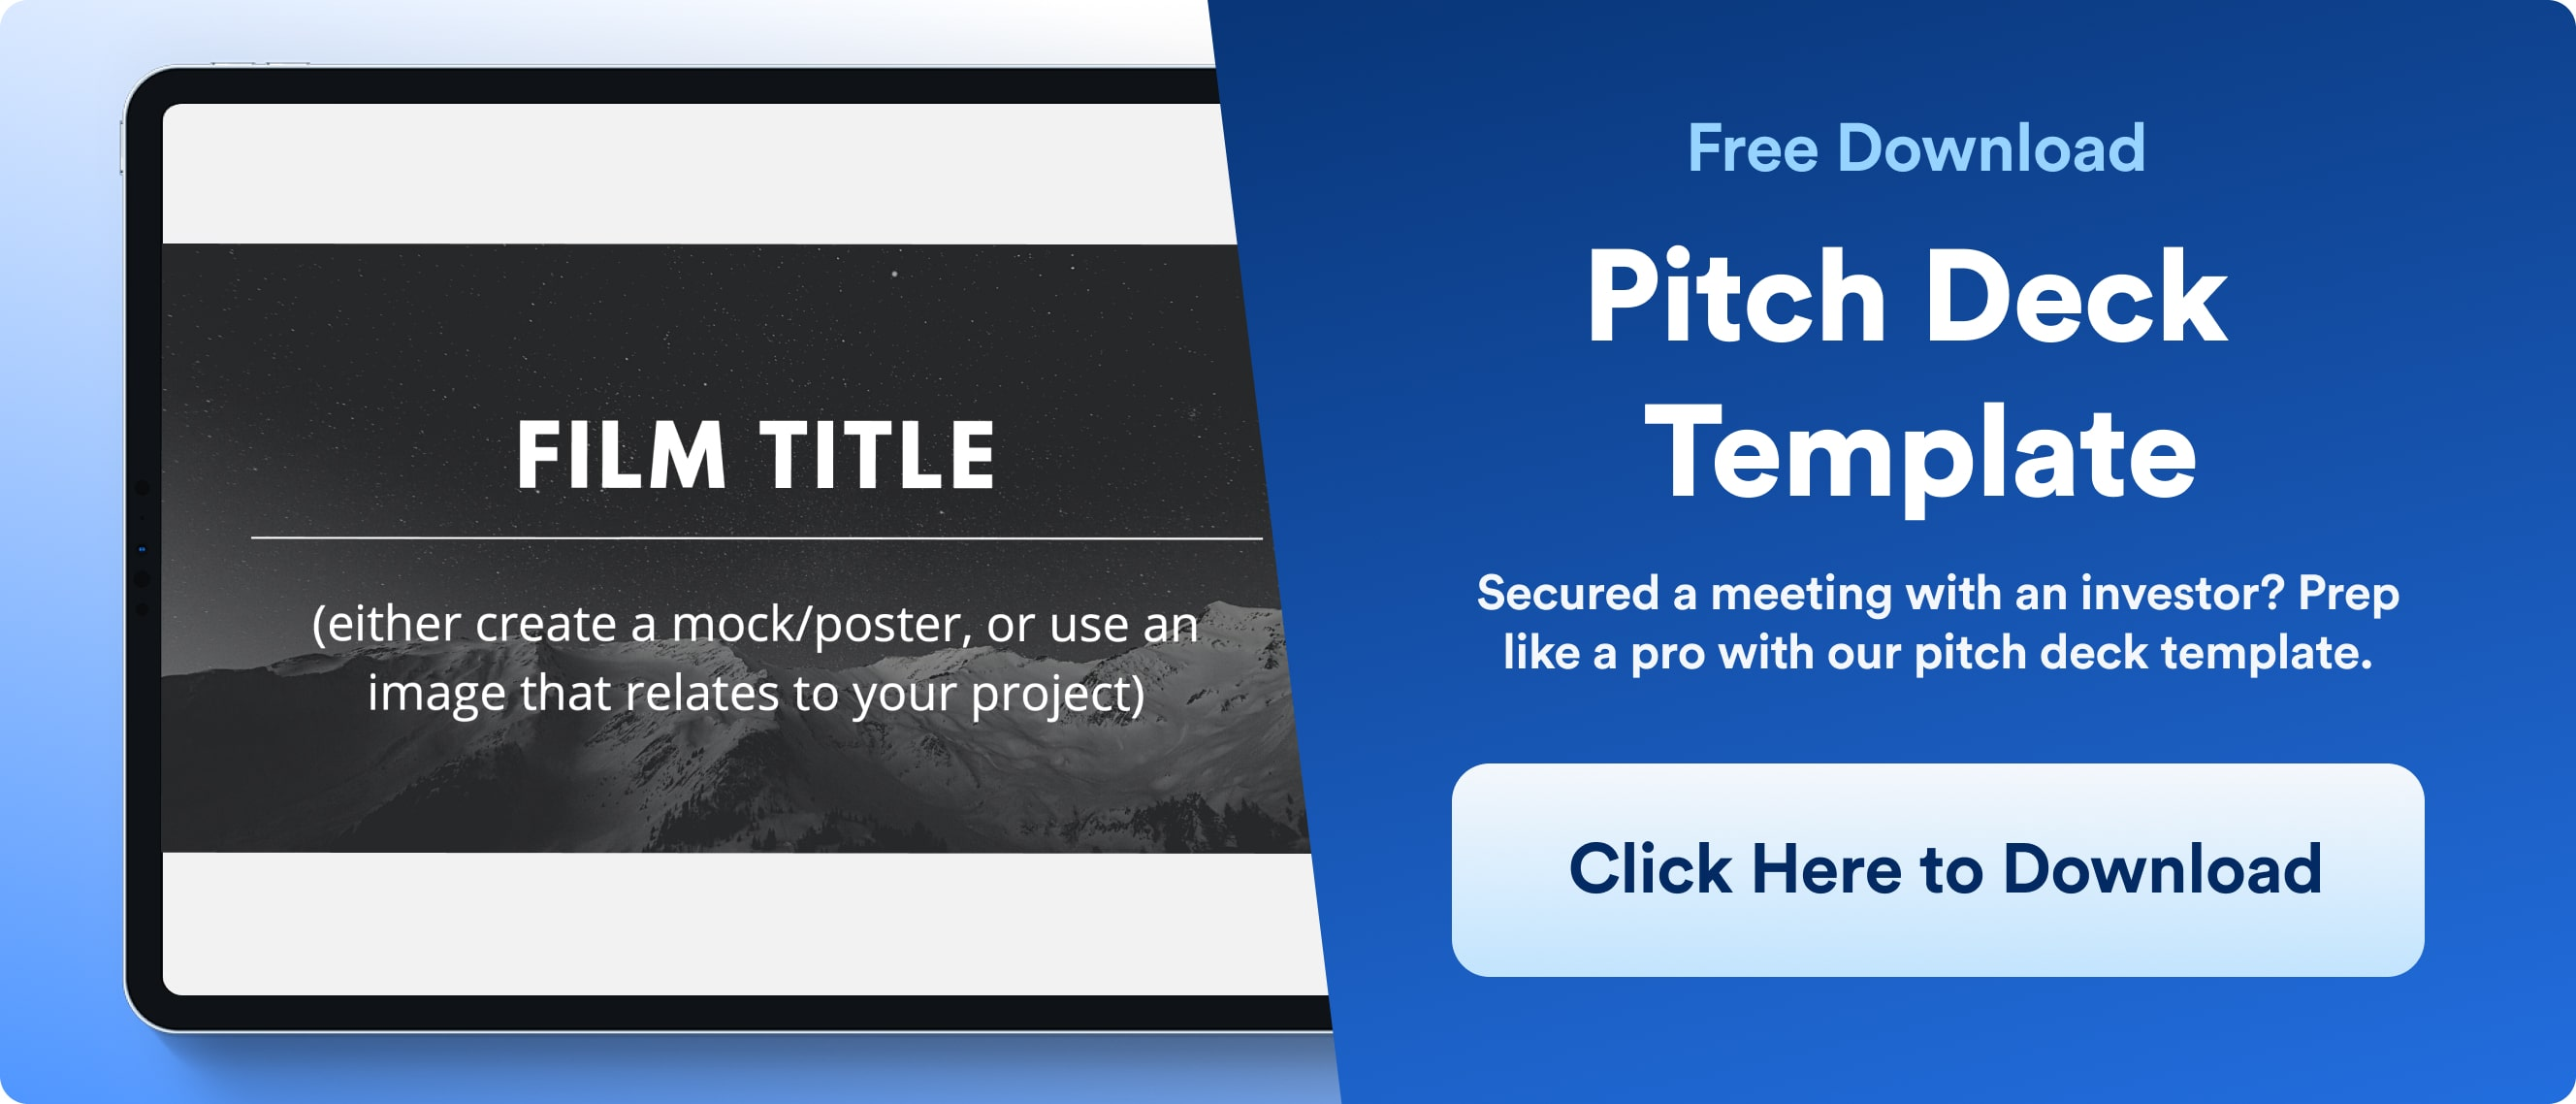 Pitch Deck Template - Download - Wrapbook